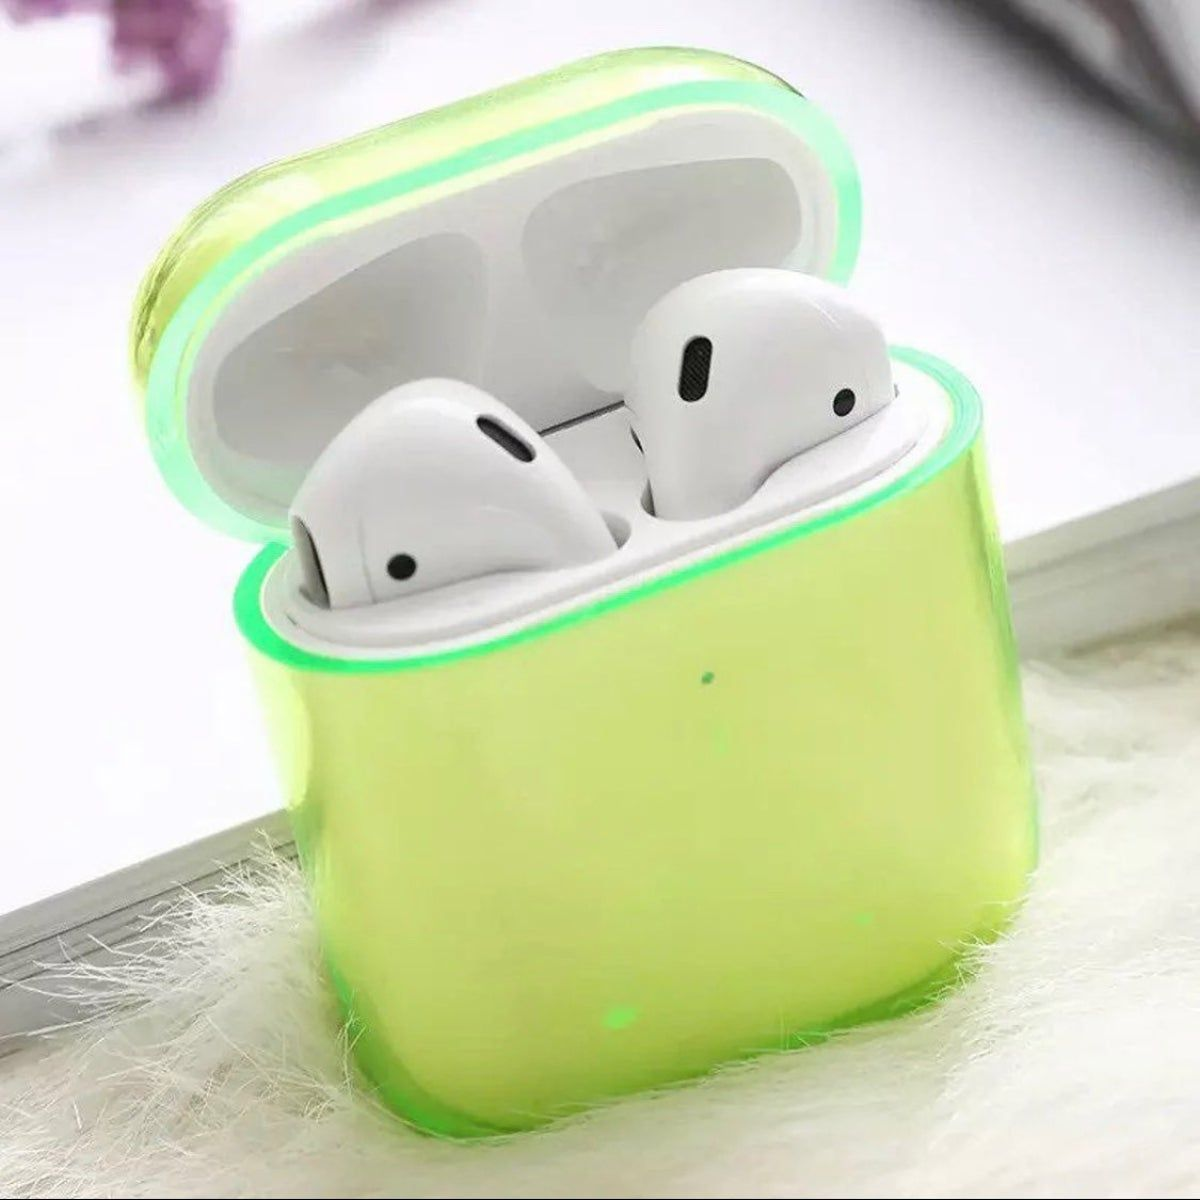 Pin By Sofie Niebuhr On Stuff Air Pods Earbuds Case Cute Ipod Cases